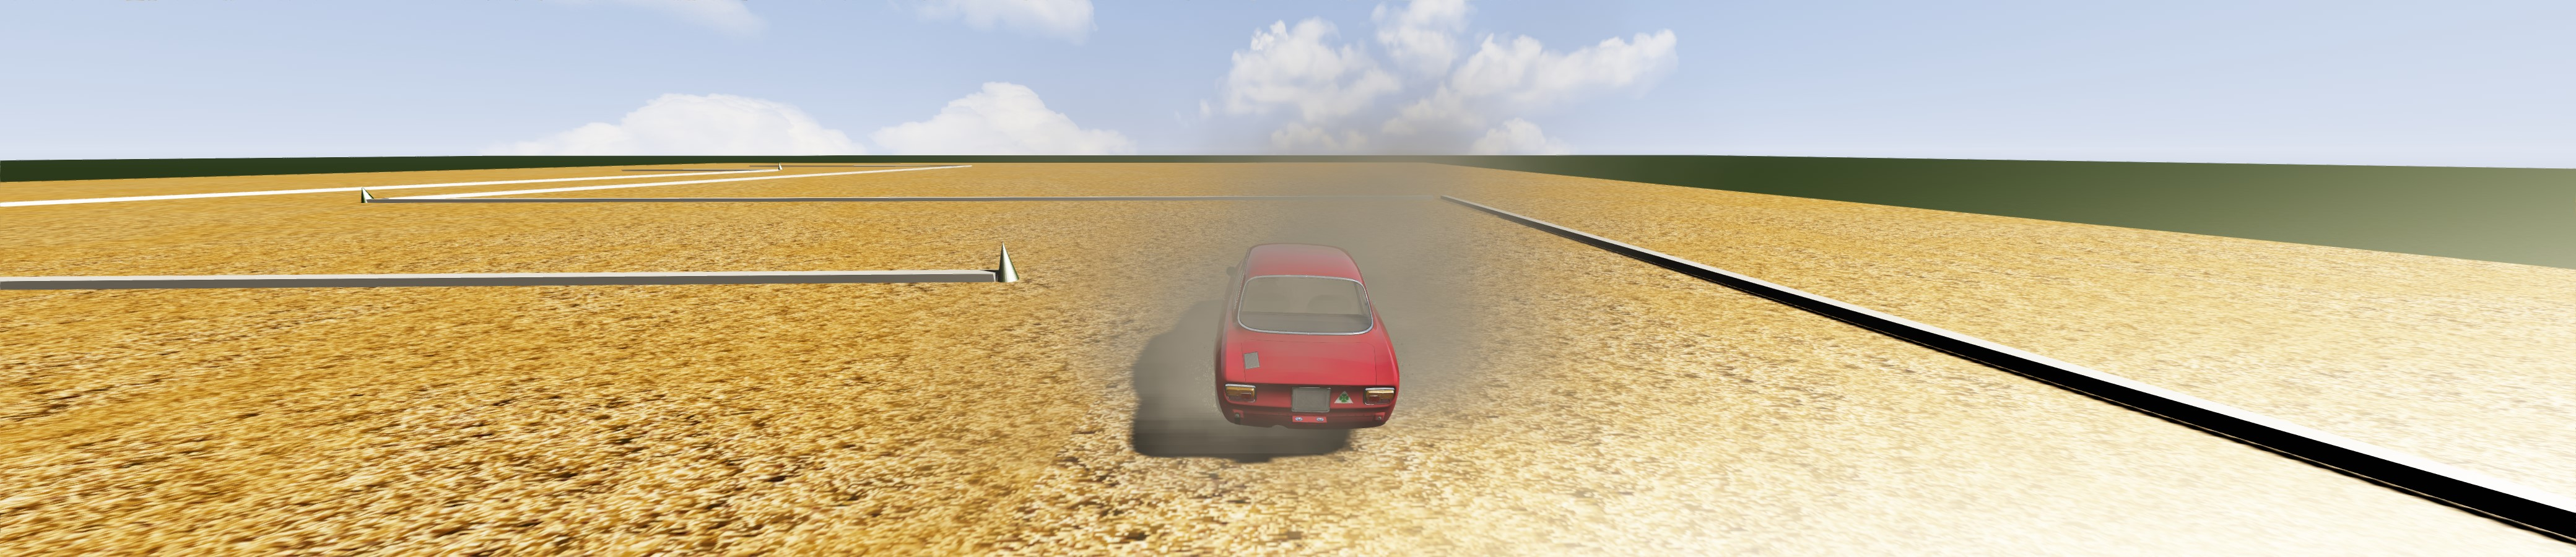 RBR Rally lessons version   Assetto Corsa Mods